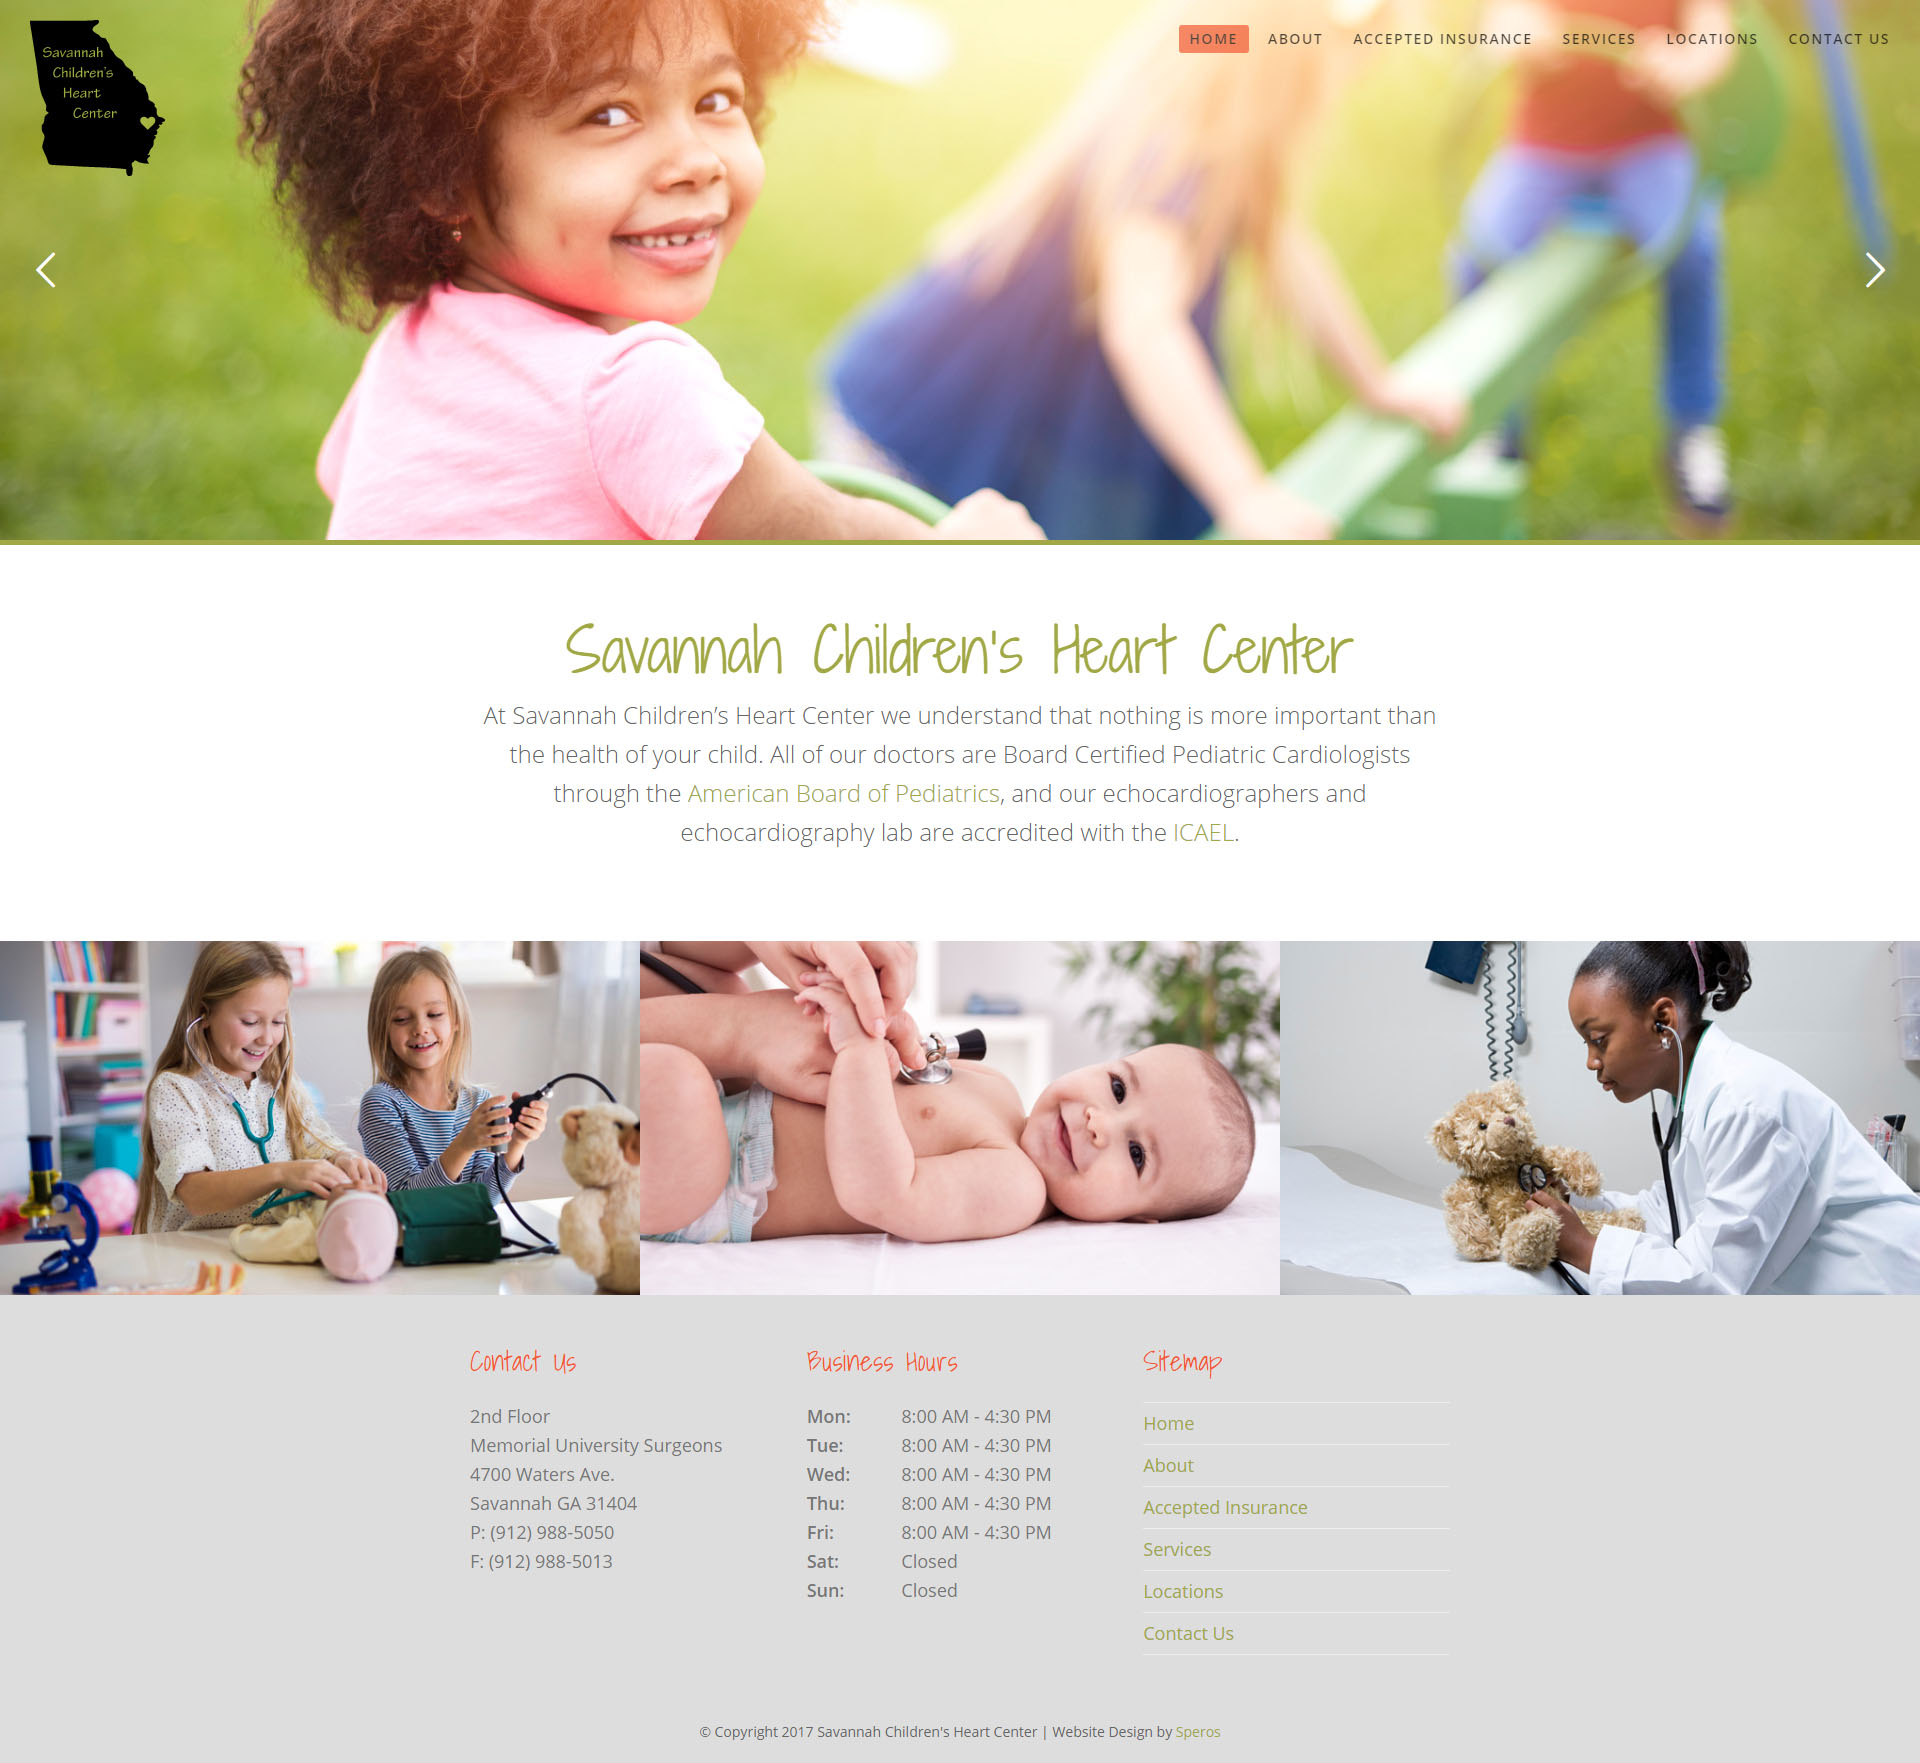 Savannah Children's Heart Center Website Homepage